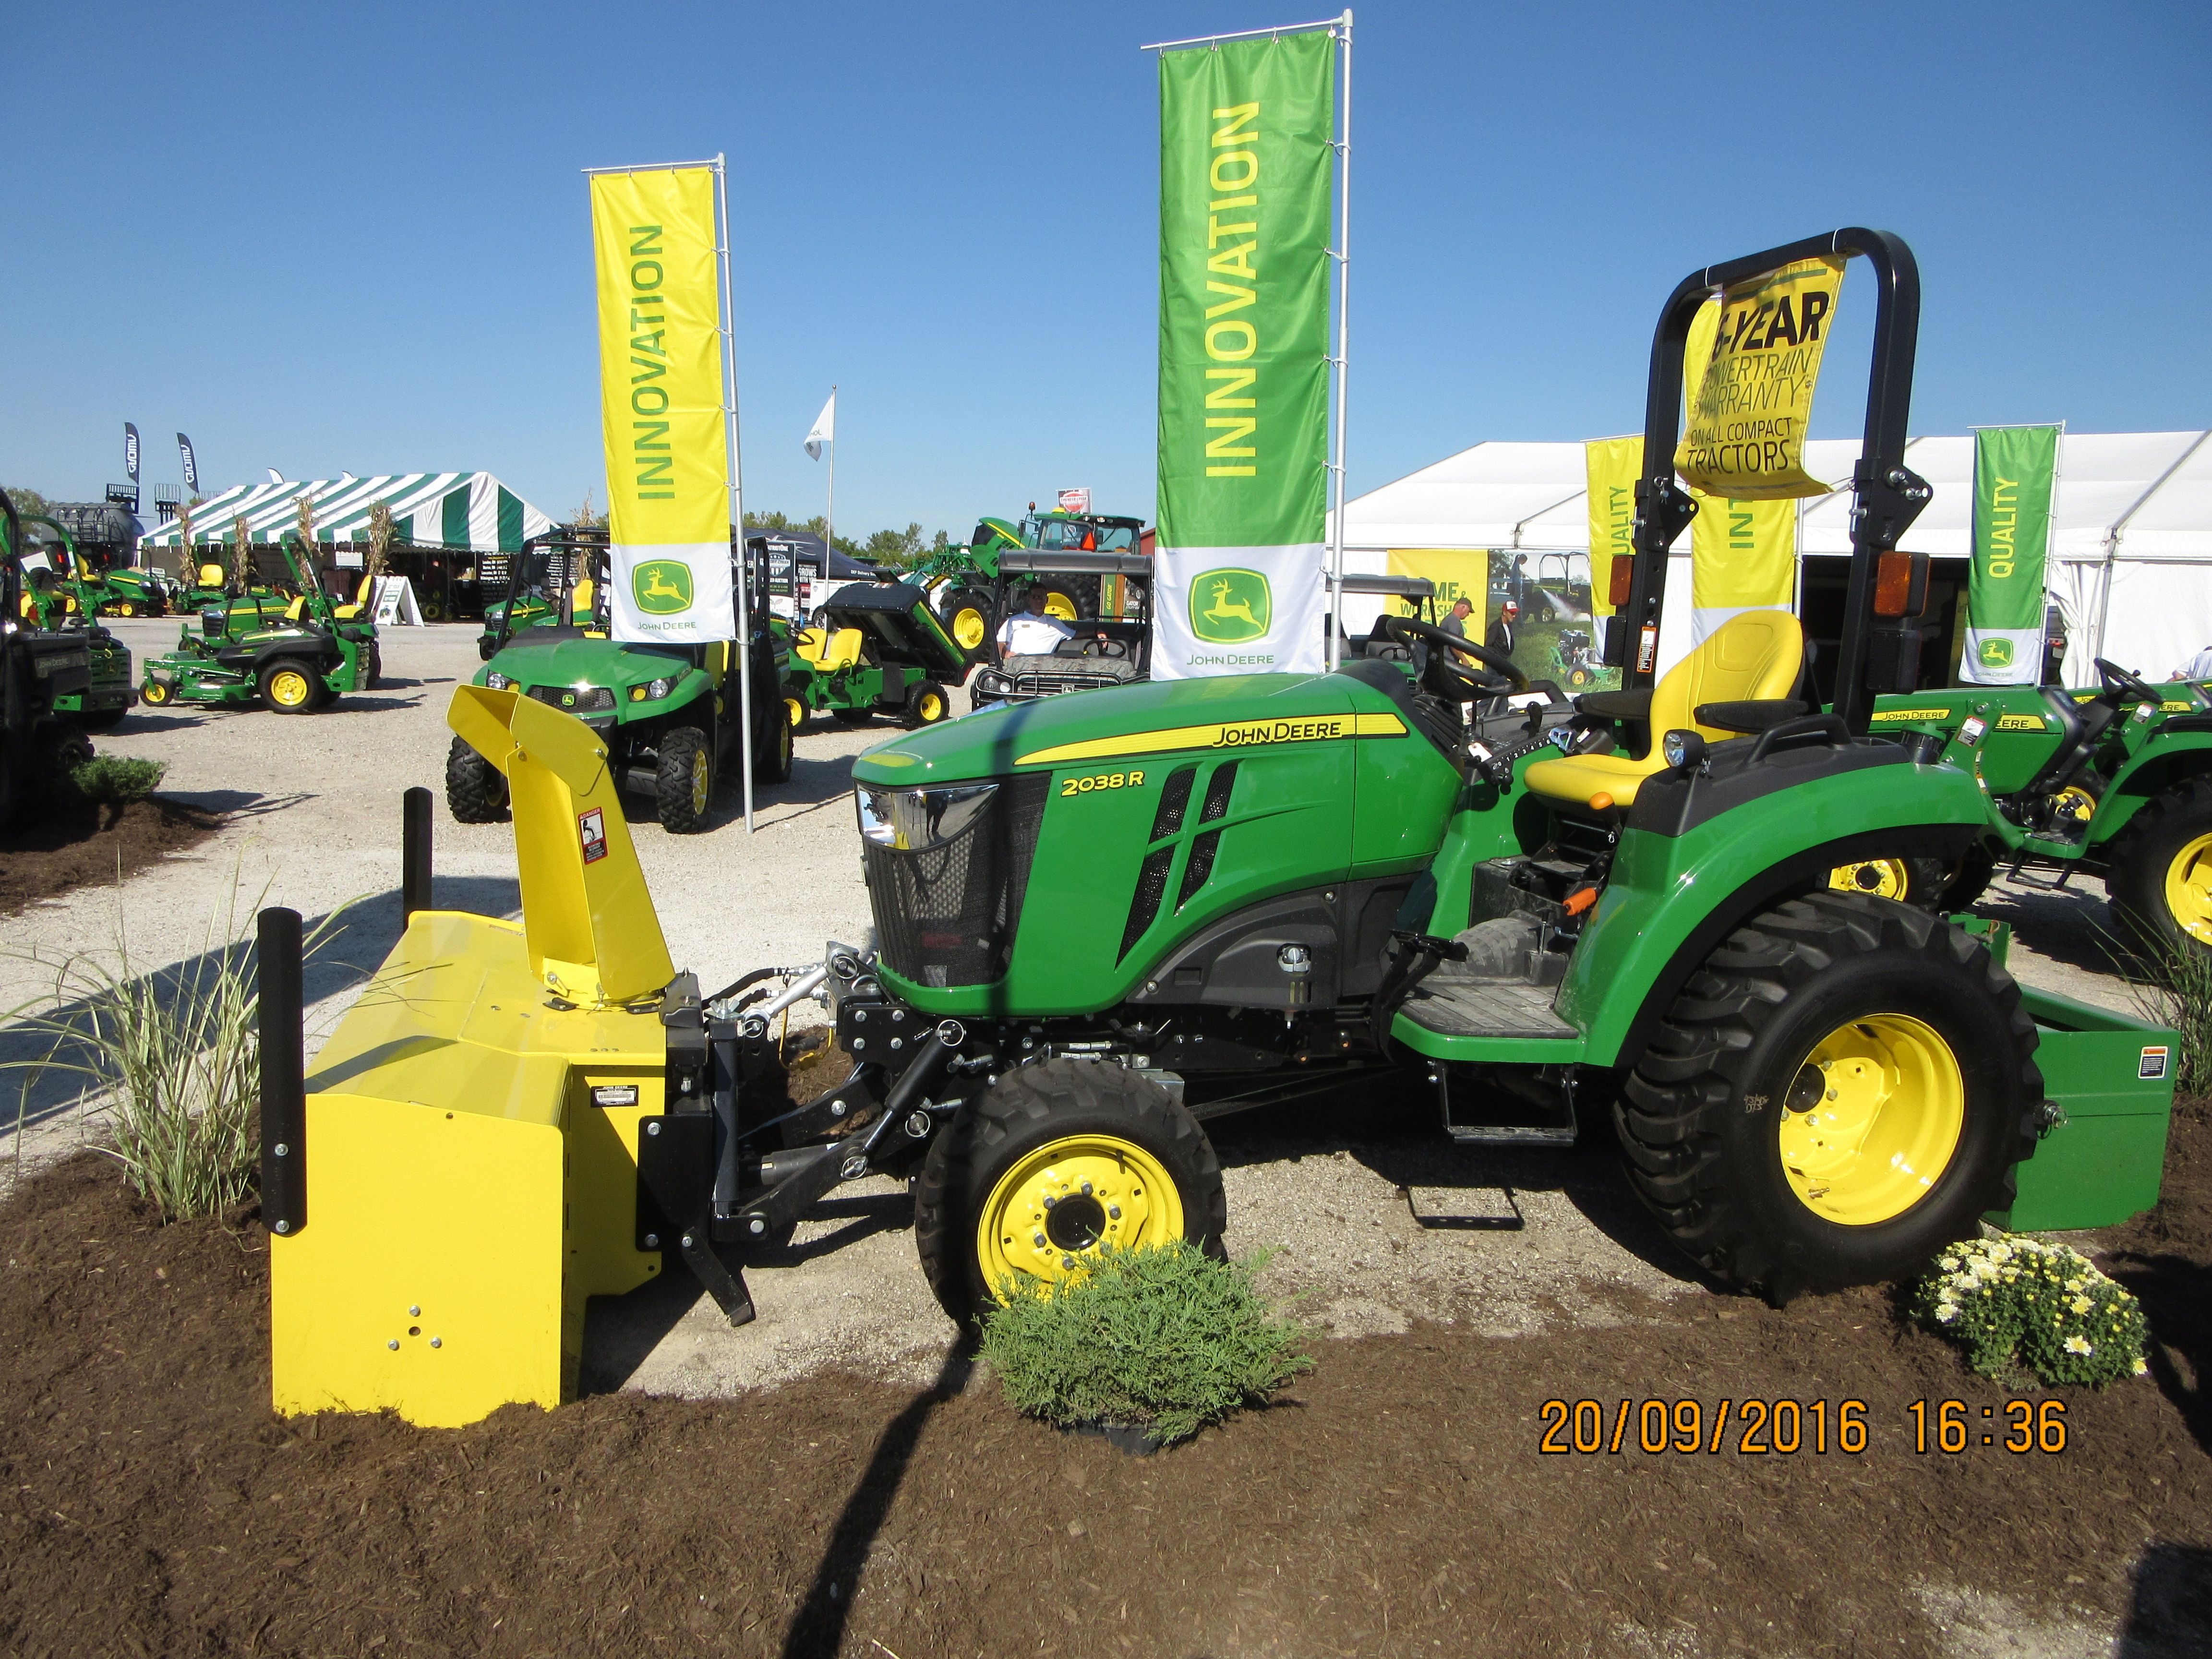 Pin on JD Farm Equipmy pictures